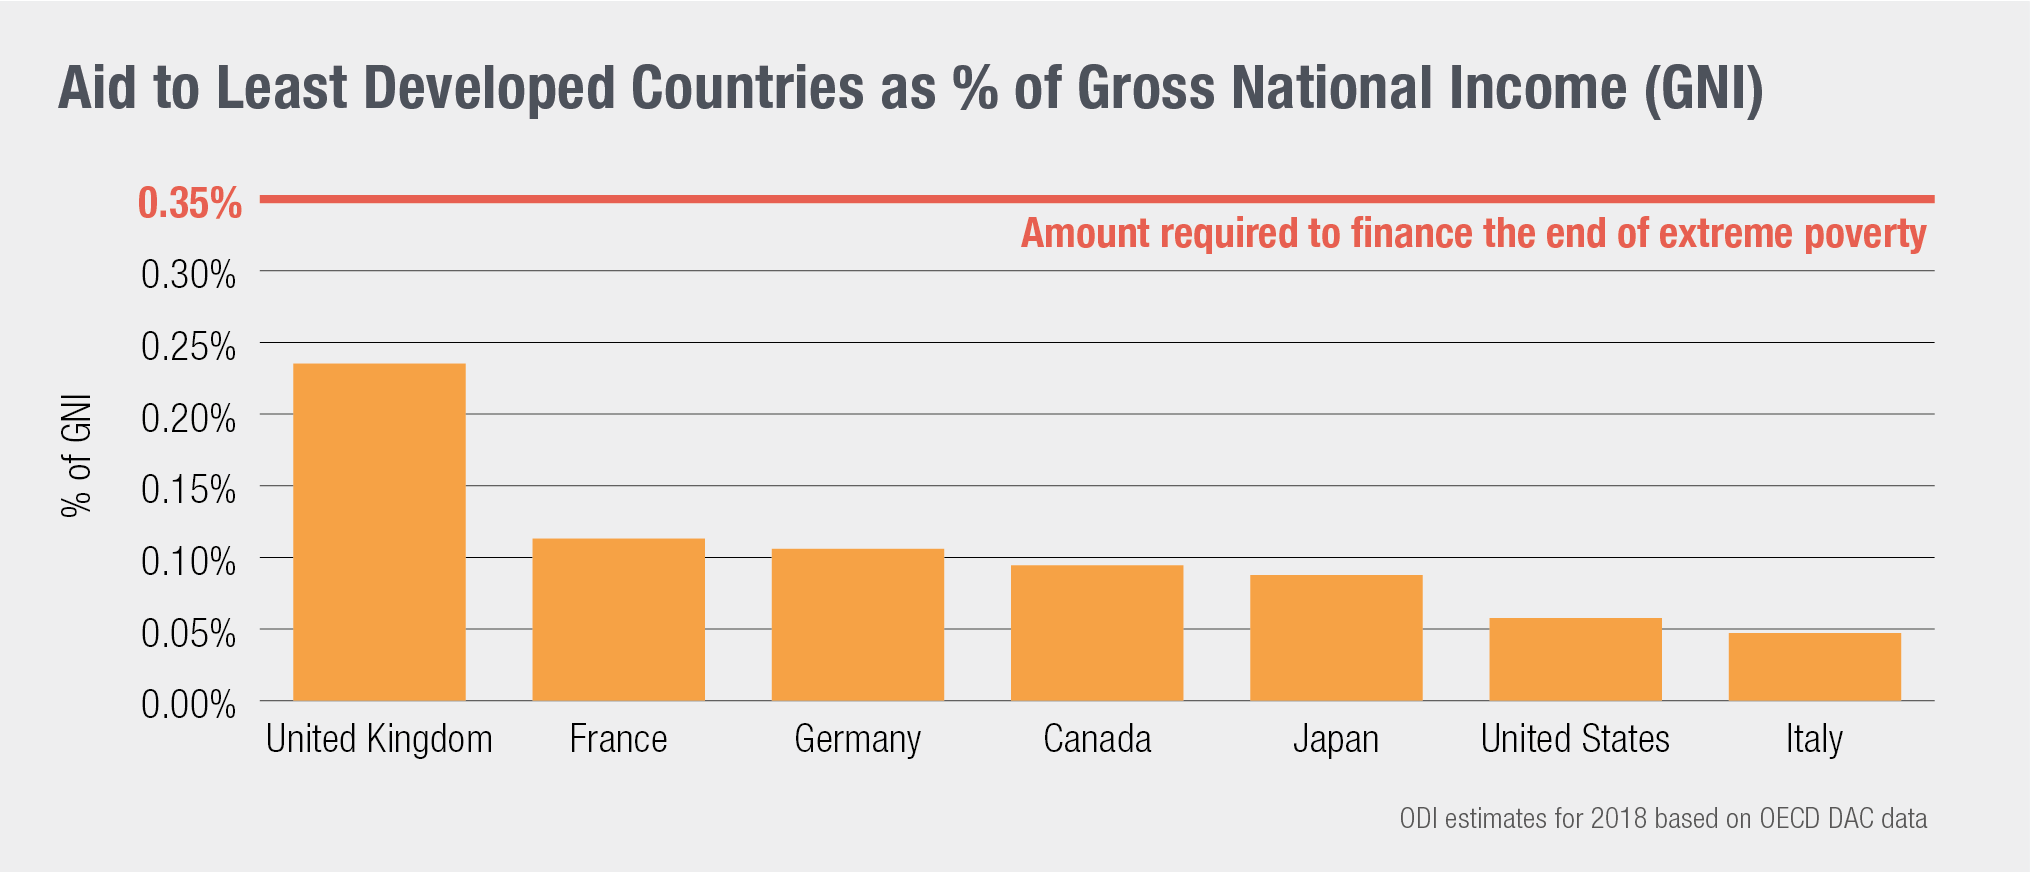 Aid to least economically developed countryside as percentage of gross national income